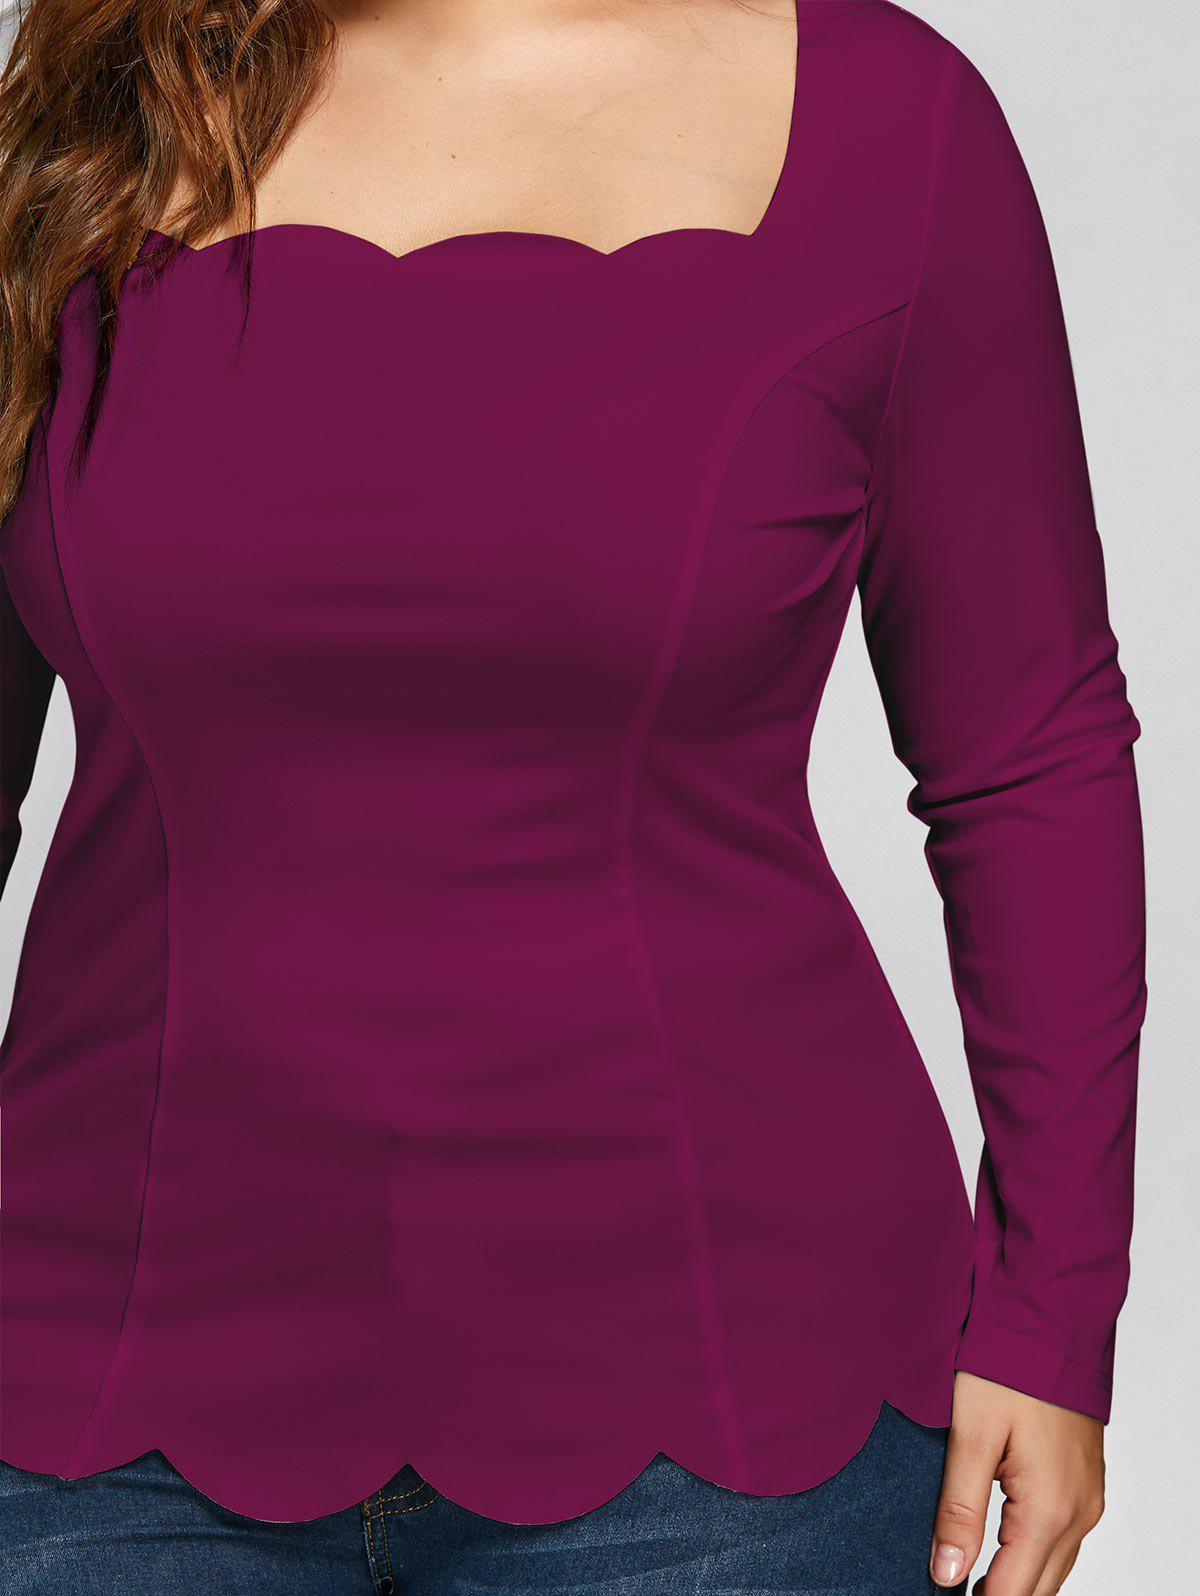 Plus Size Scalloped Square Neck Long Sleeve Top - WINE RED 2XL